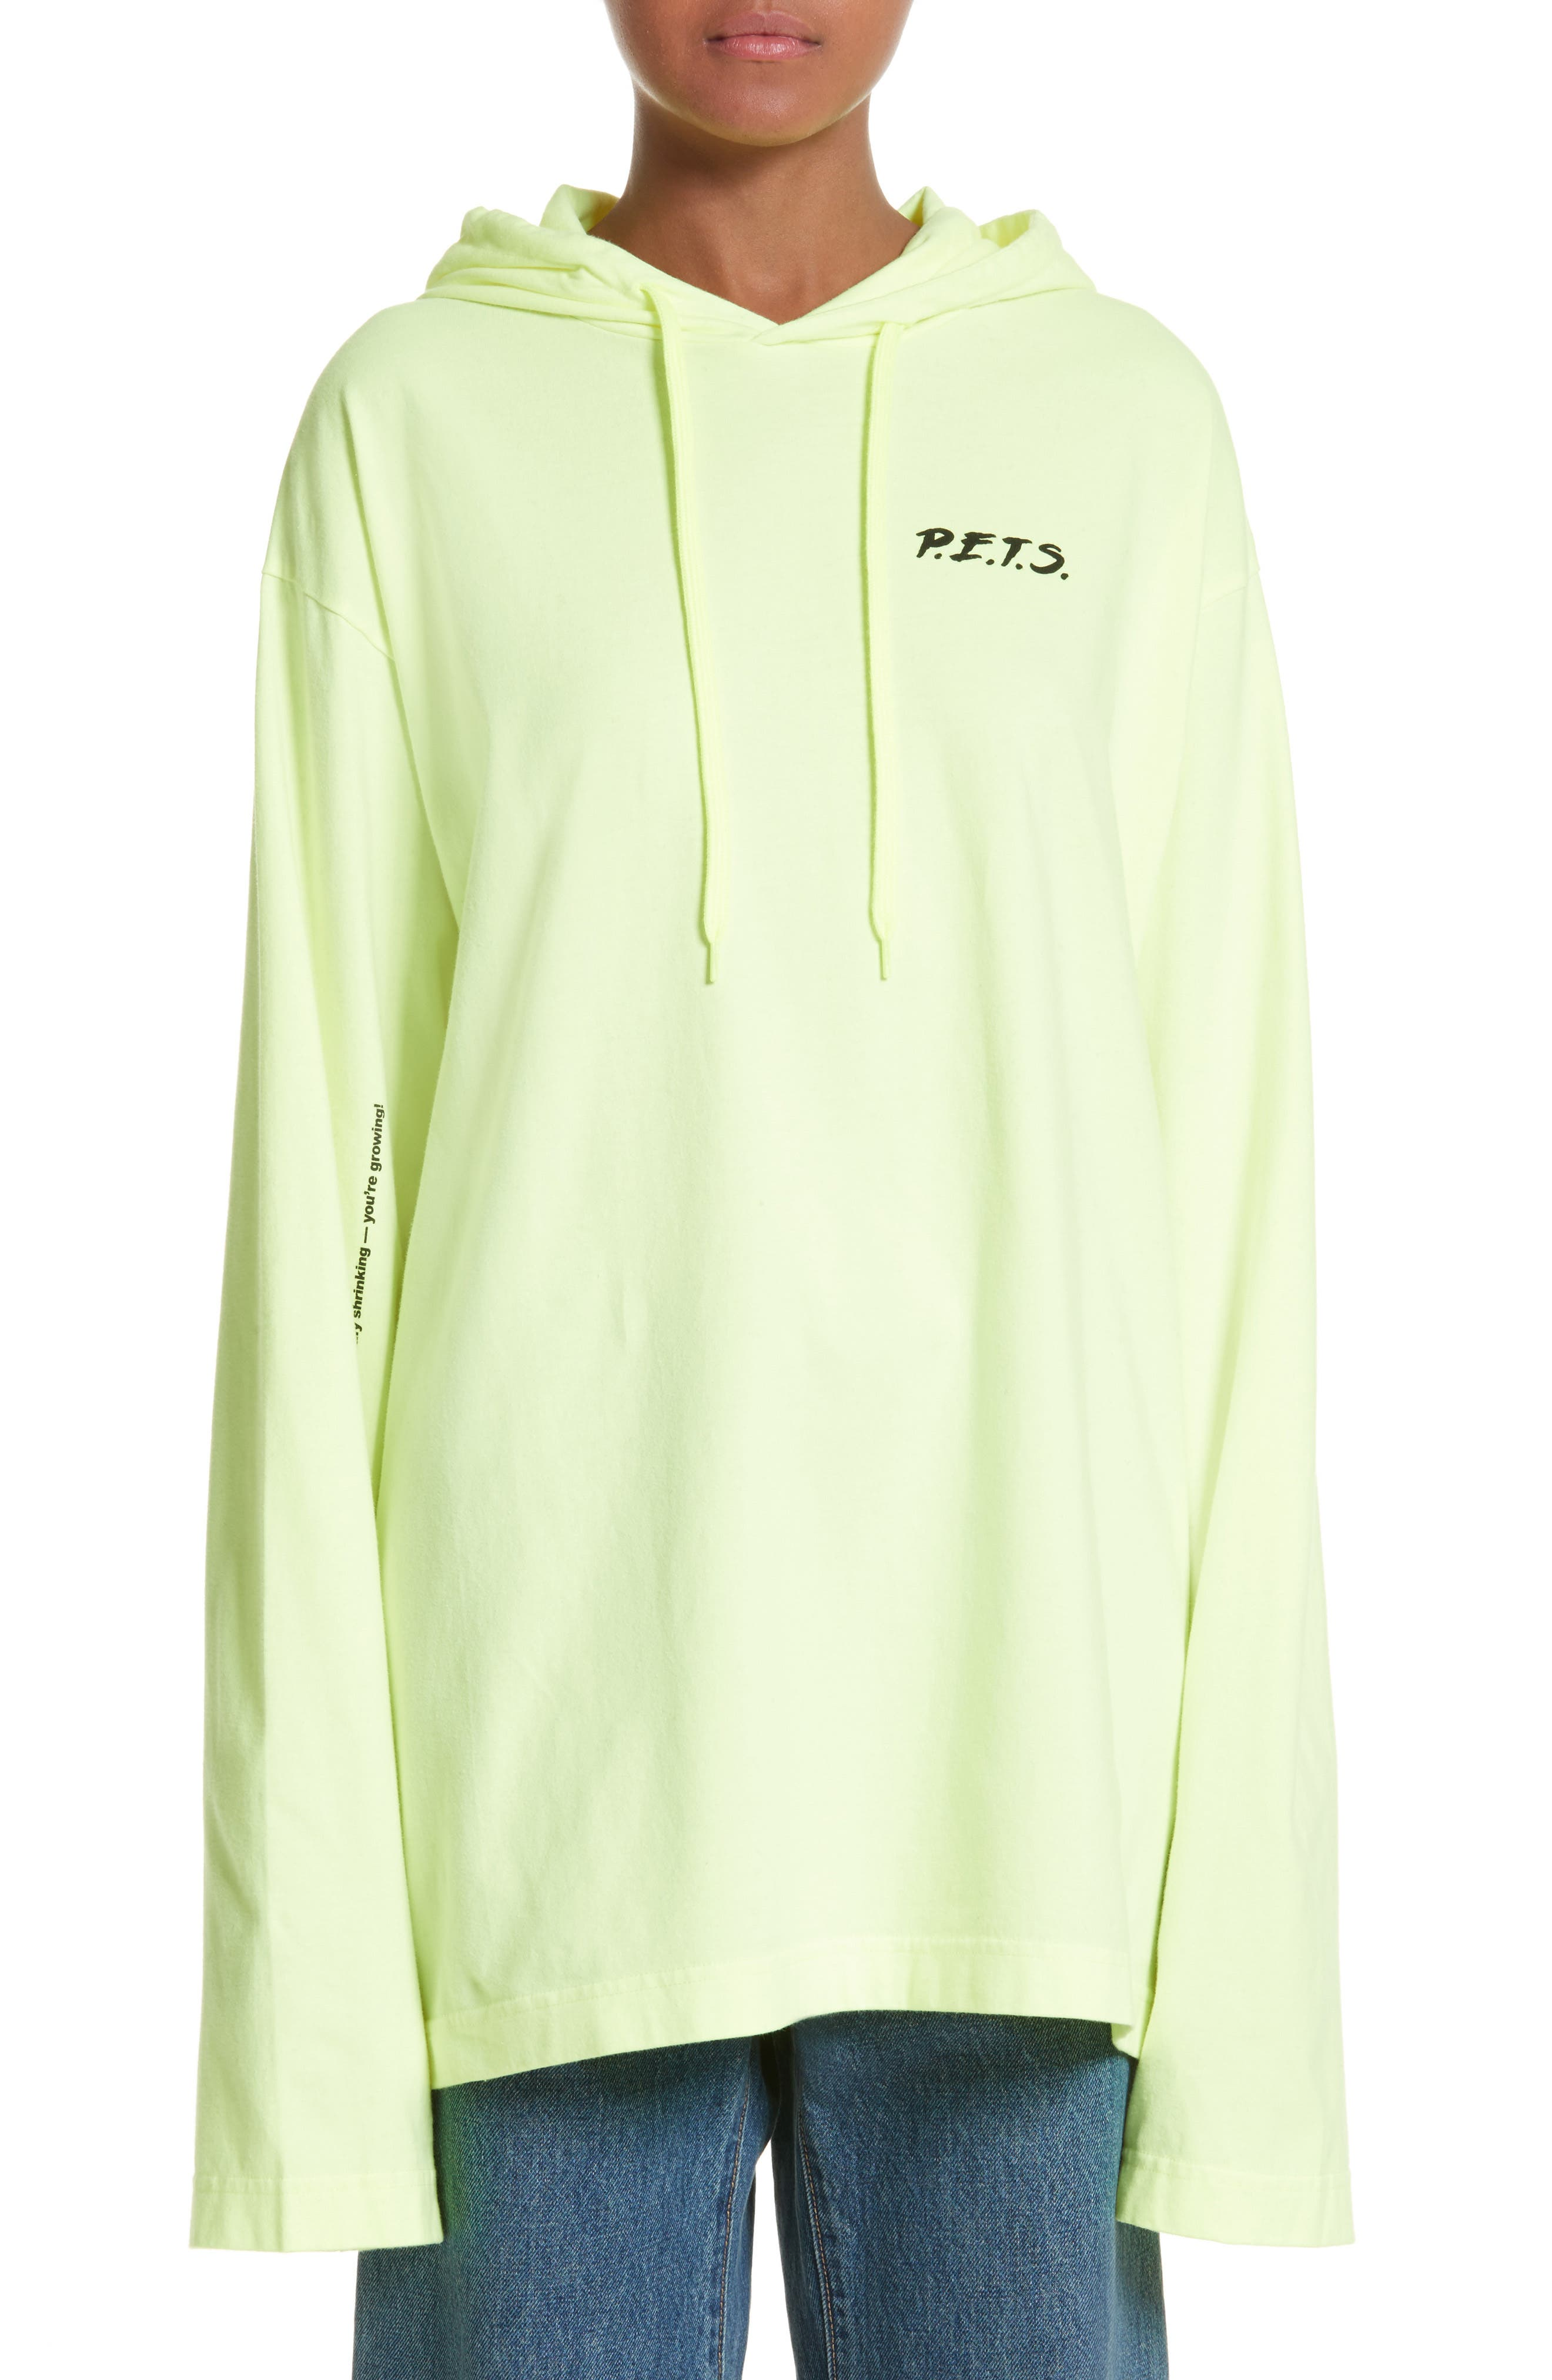 P.E.T.S. Jersey Pullover Hoodie,                             Main thumbnail 1, color,                             740